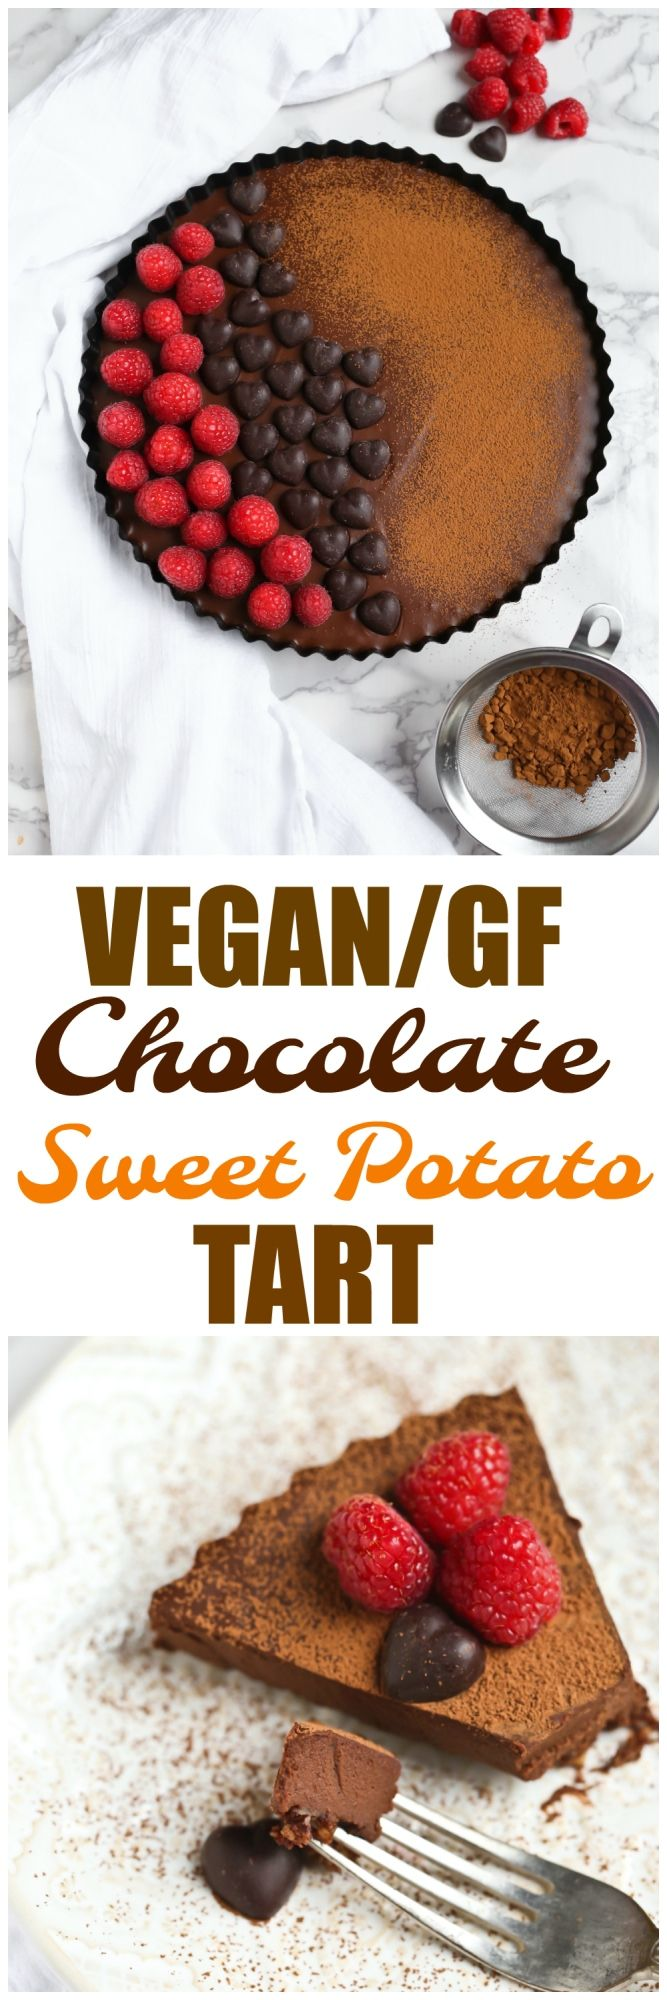 Vegan Chocolate Sweet Potato Tart that is dairy-free, gluten-free, grain-free and absolutely DIVINE! Easy, simple and fast to make! via @thevegan8